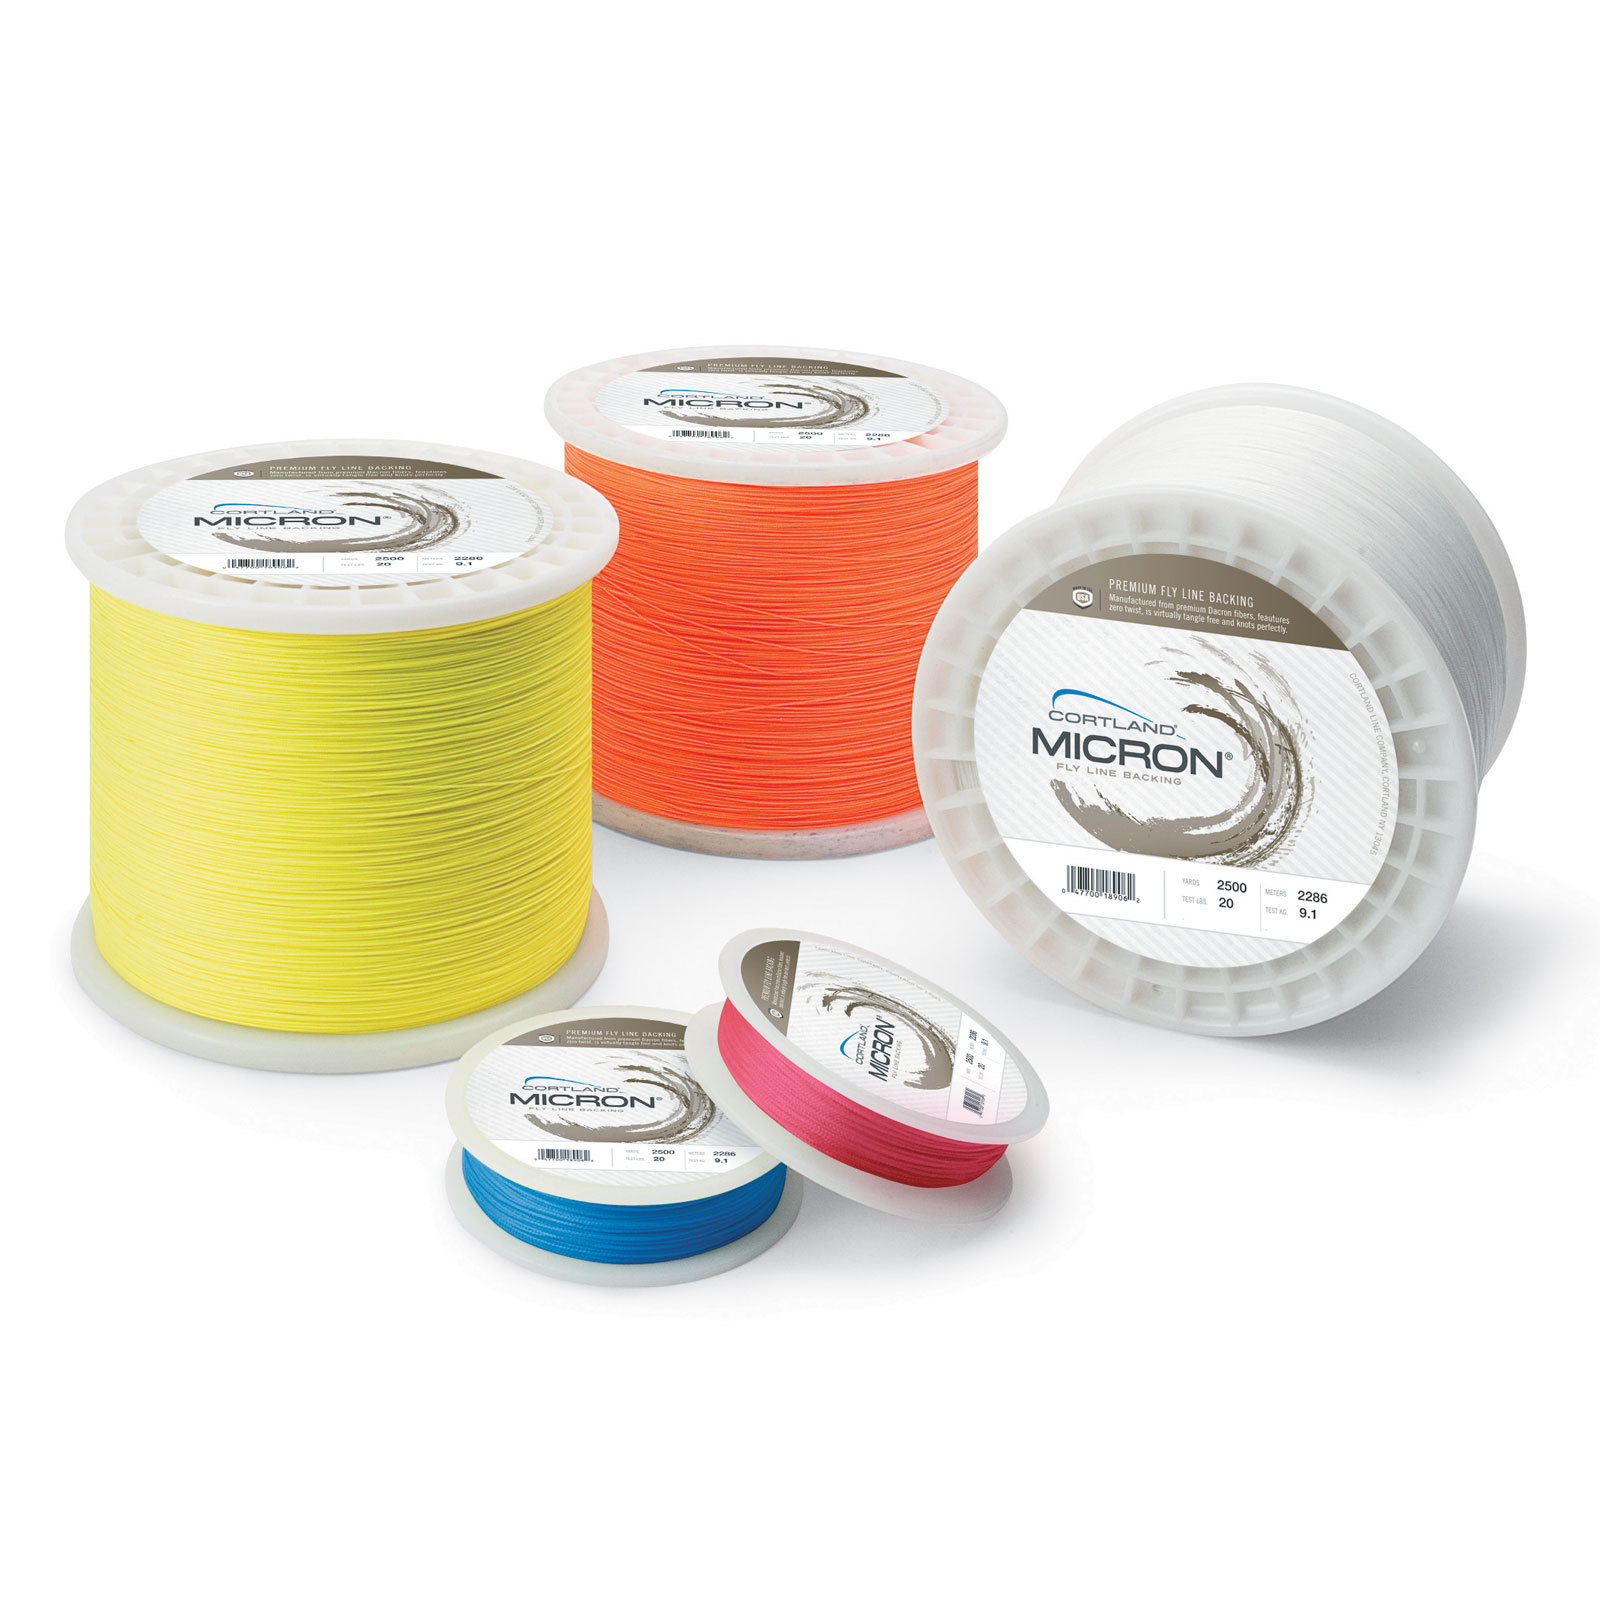 Cortland-Micron-Fly-Line-Backing-20-30-pounds-100-250-1000-2500-yards thumbnail 4